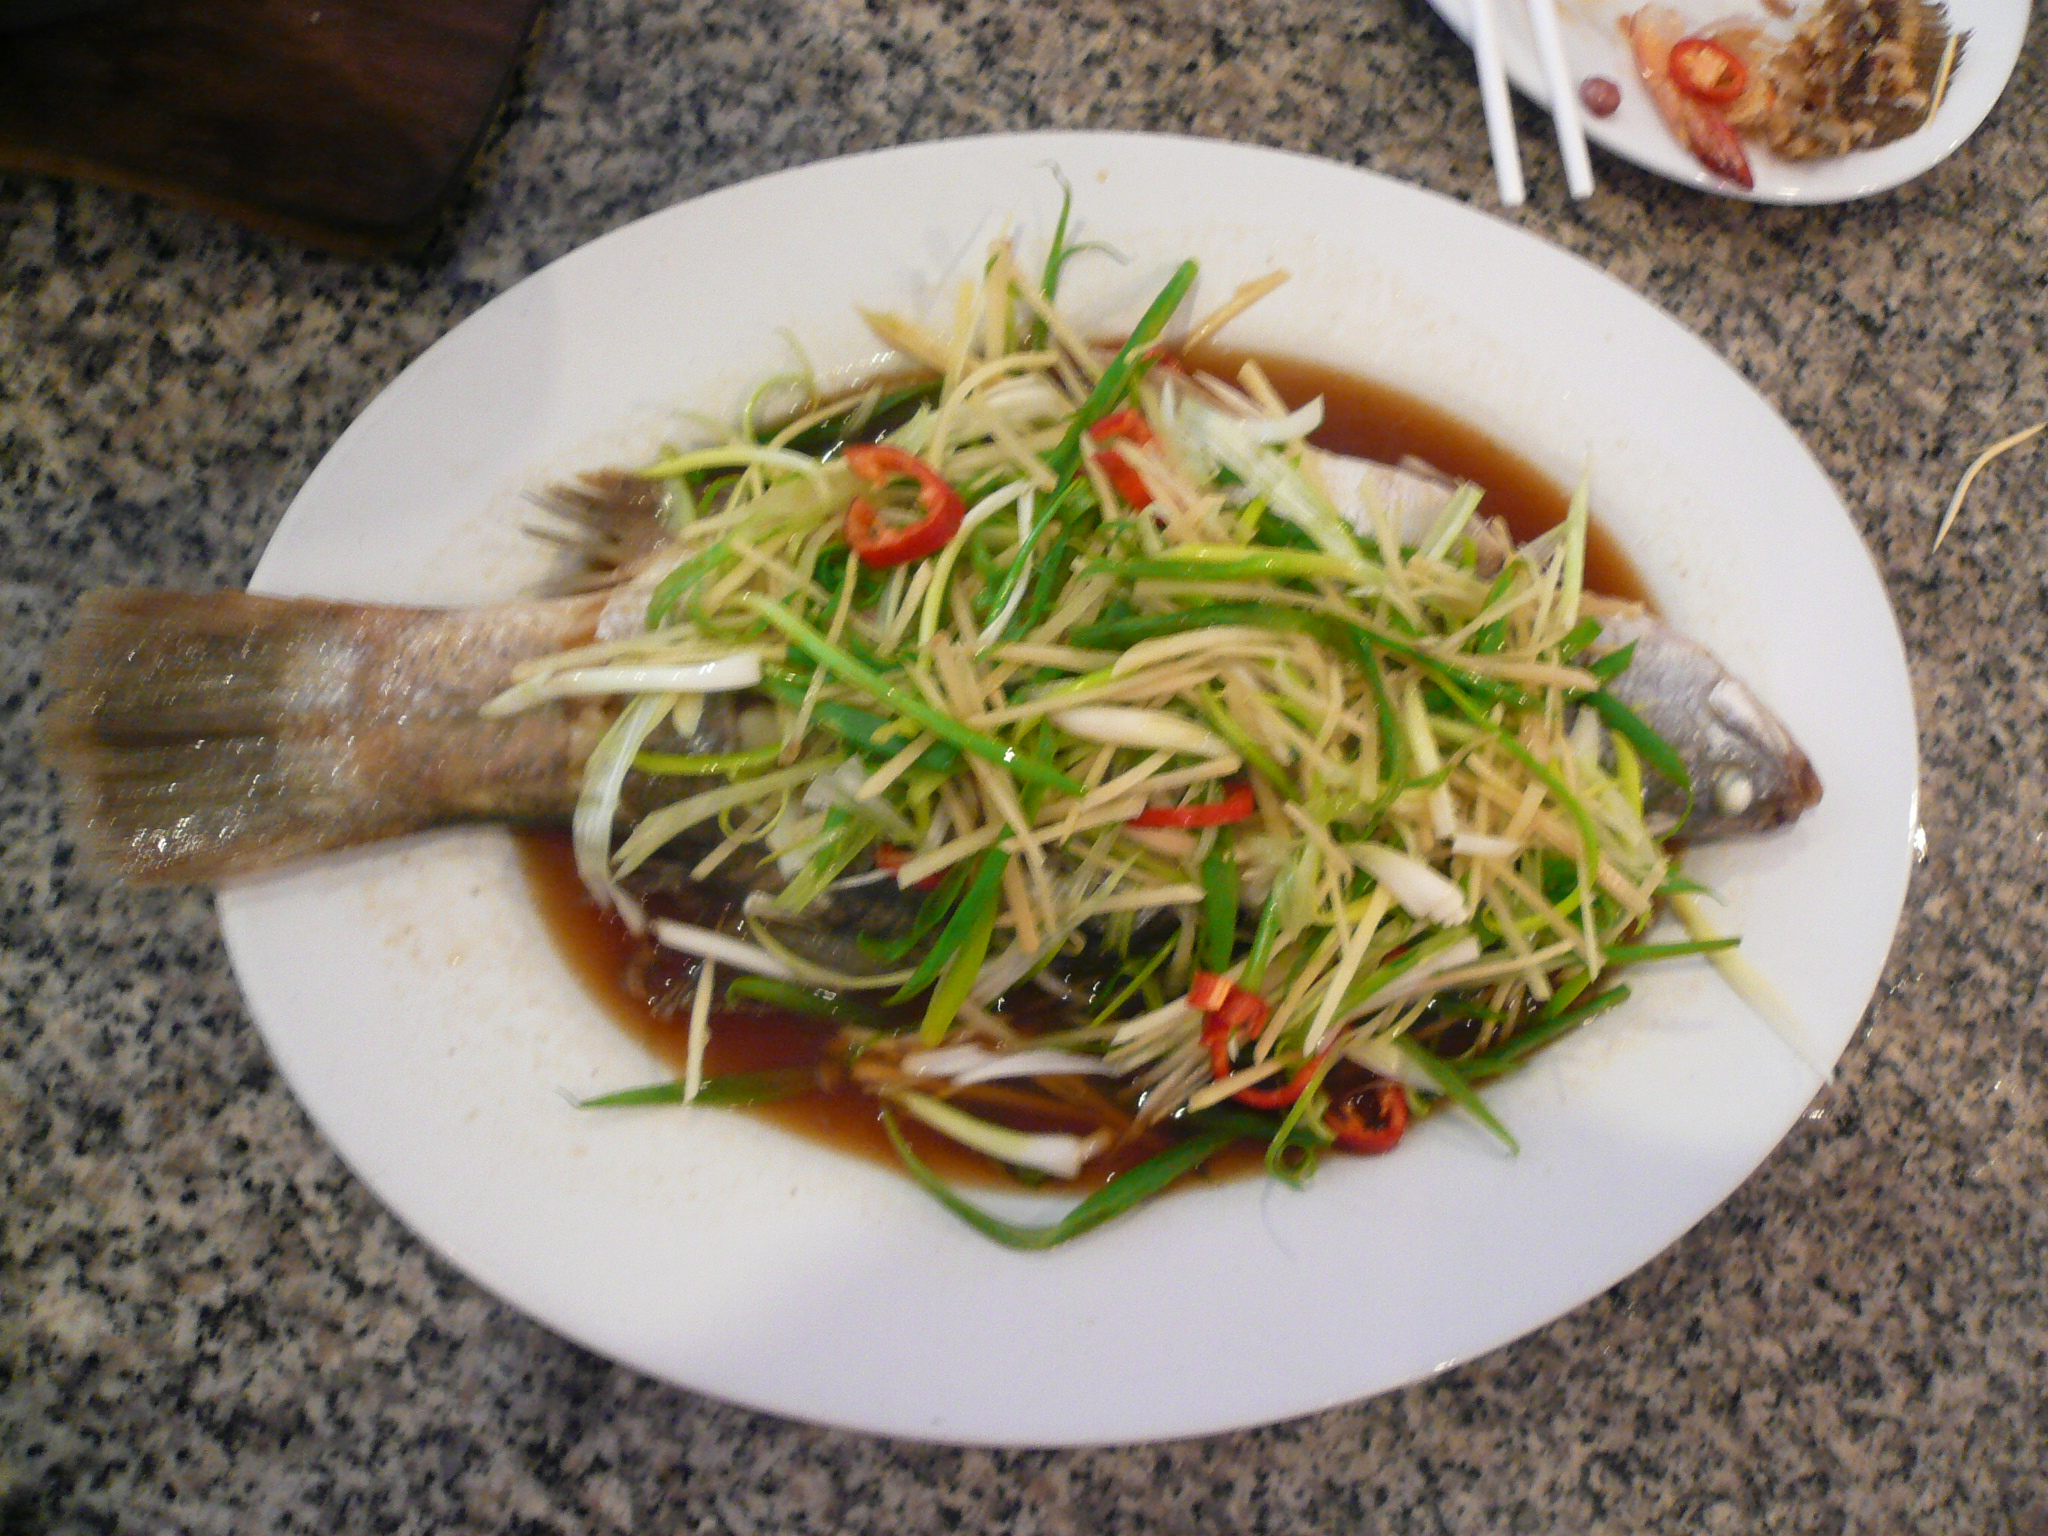 Tender, juicy and savory steamed fish. Yummy!